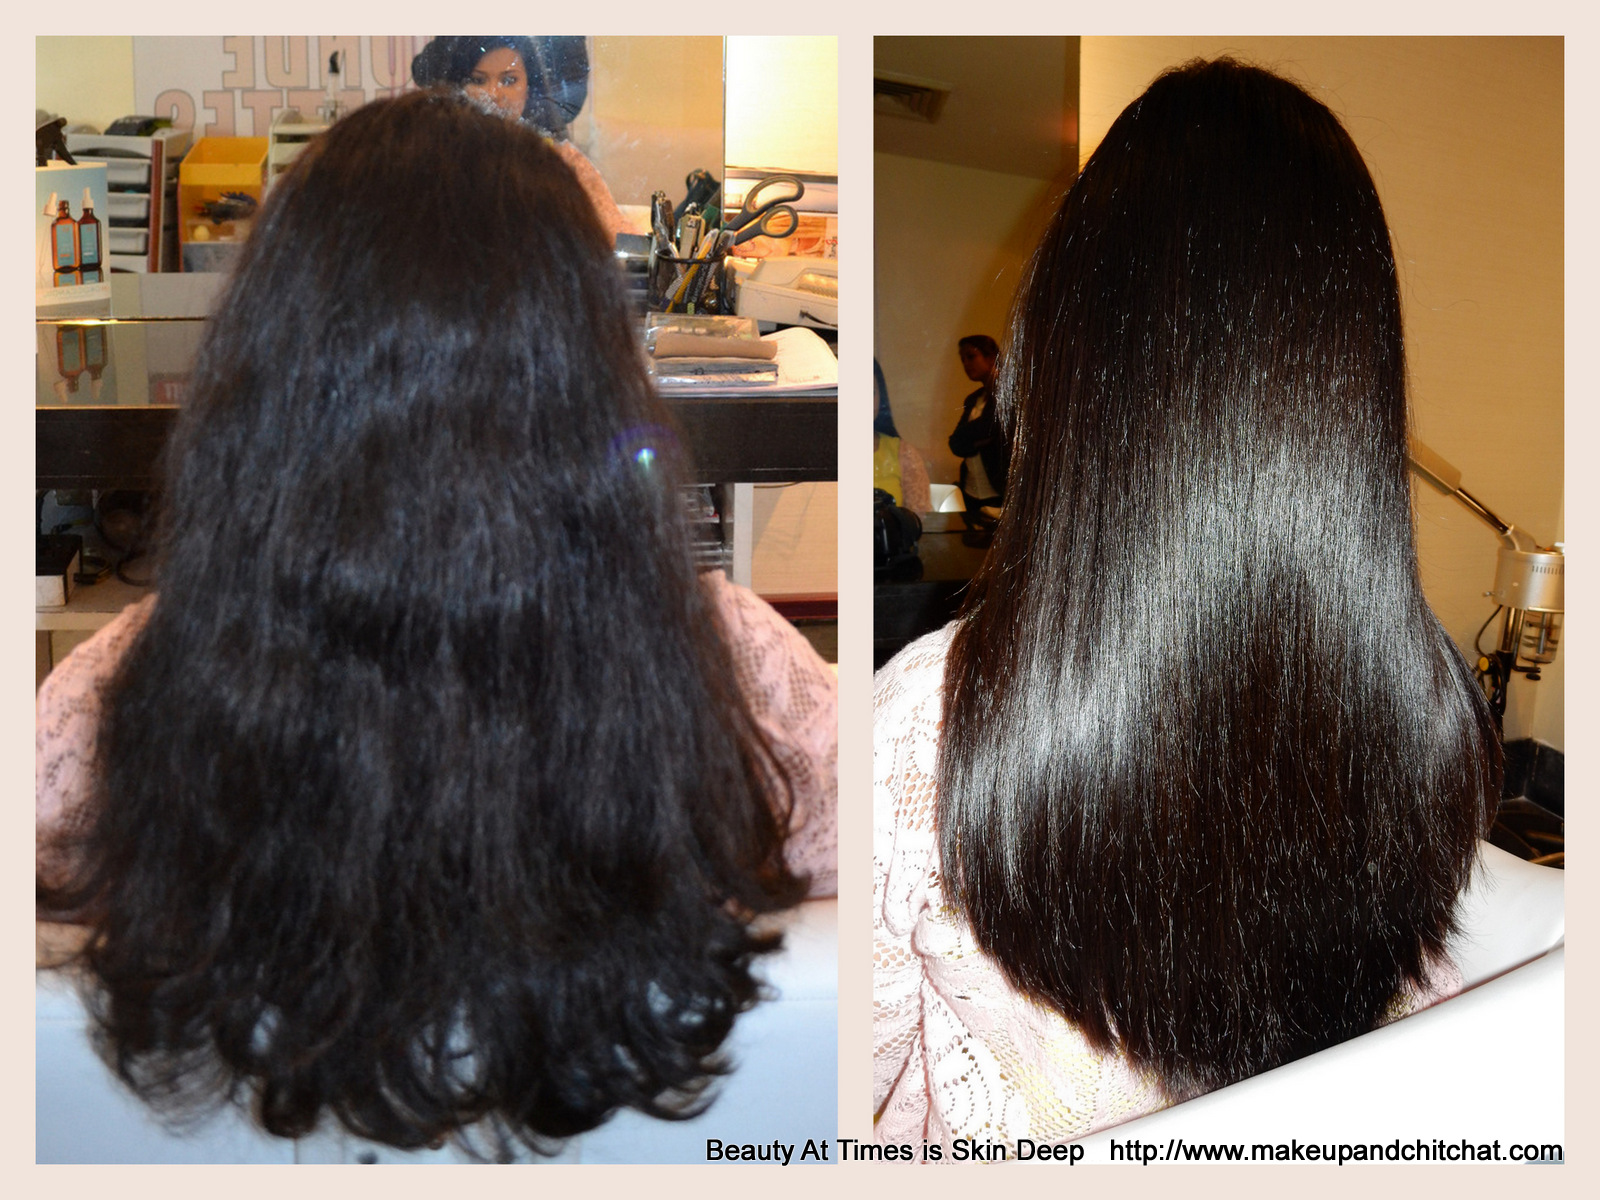 Before And After Moroccanoil Hair Smoothing Spa Treatment